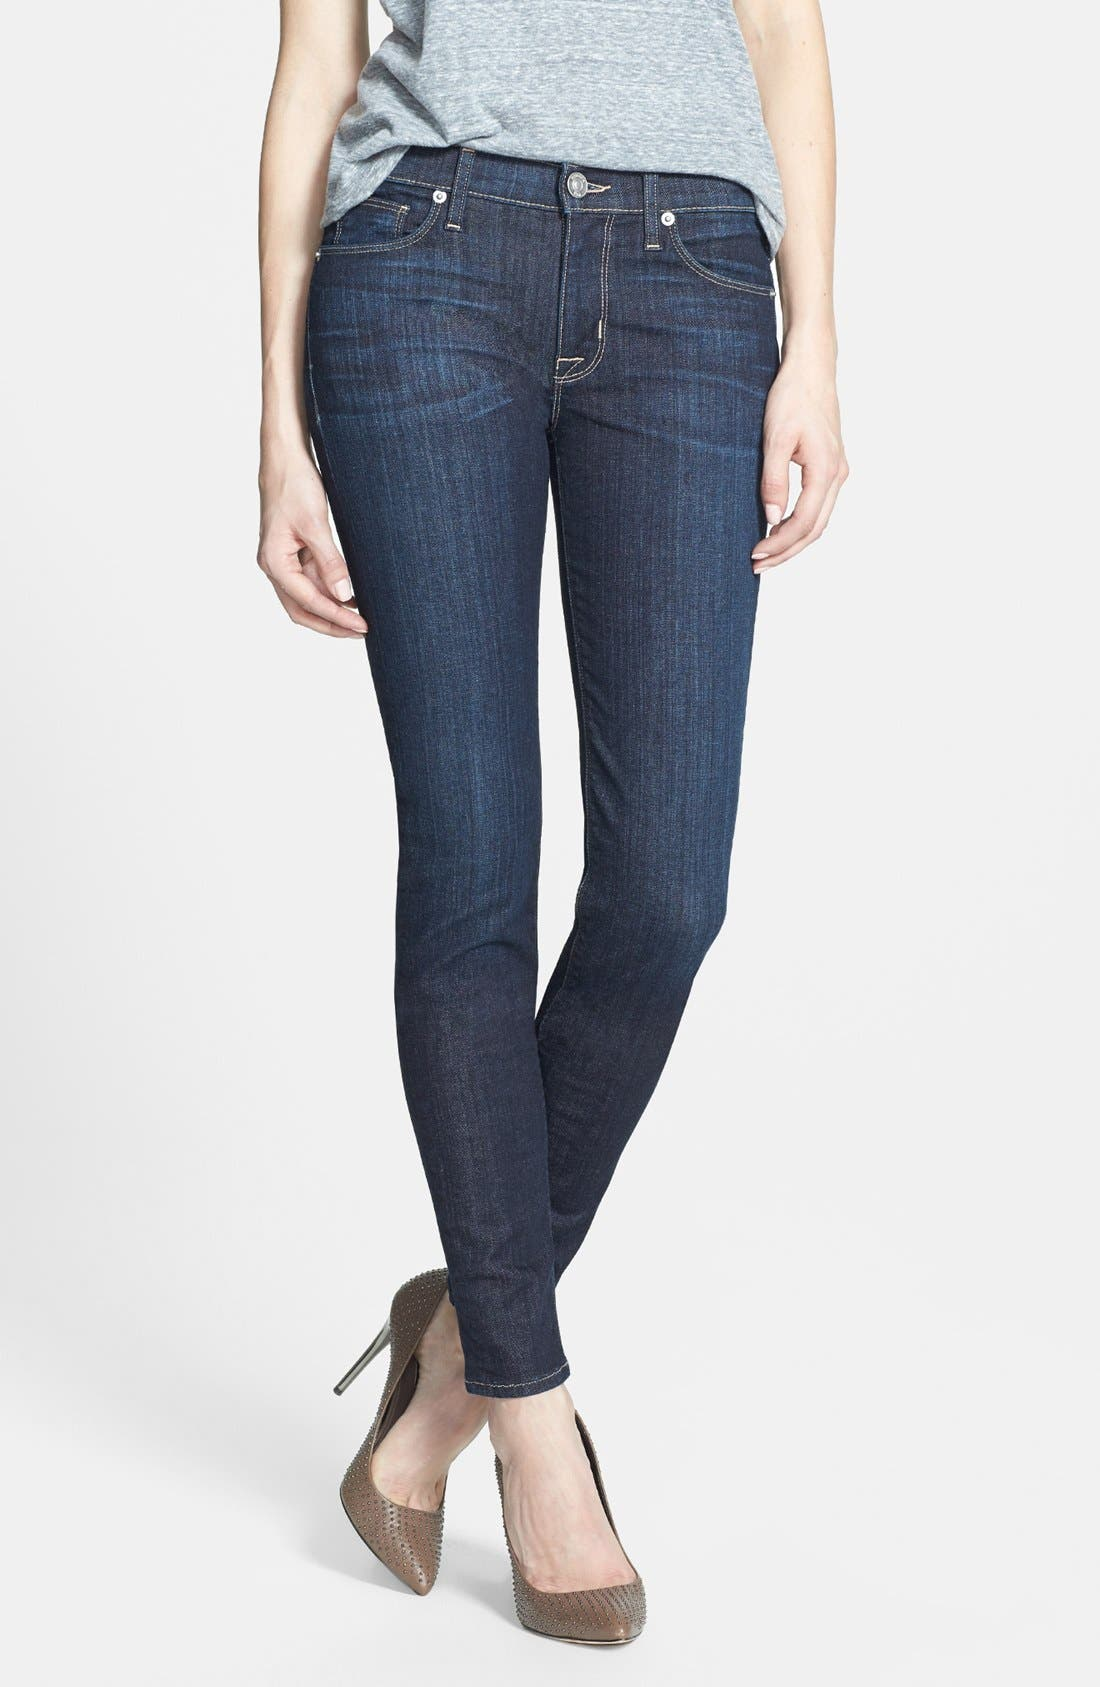 'Collette' Mid Rise Skinny Jeans,                             Main thumbnail 1, color,                             401